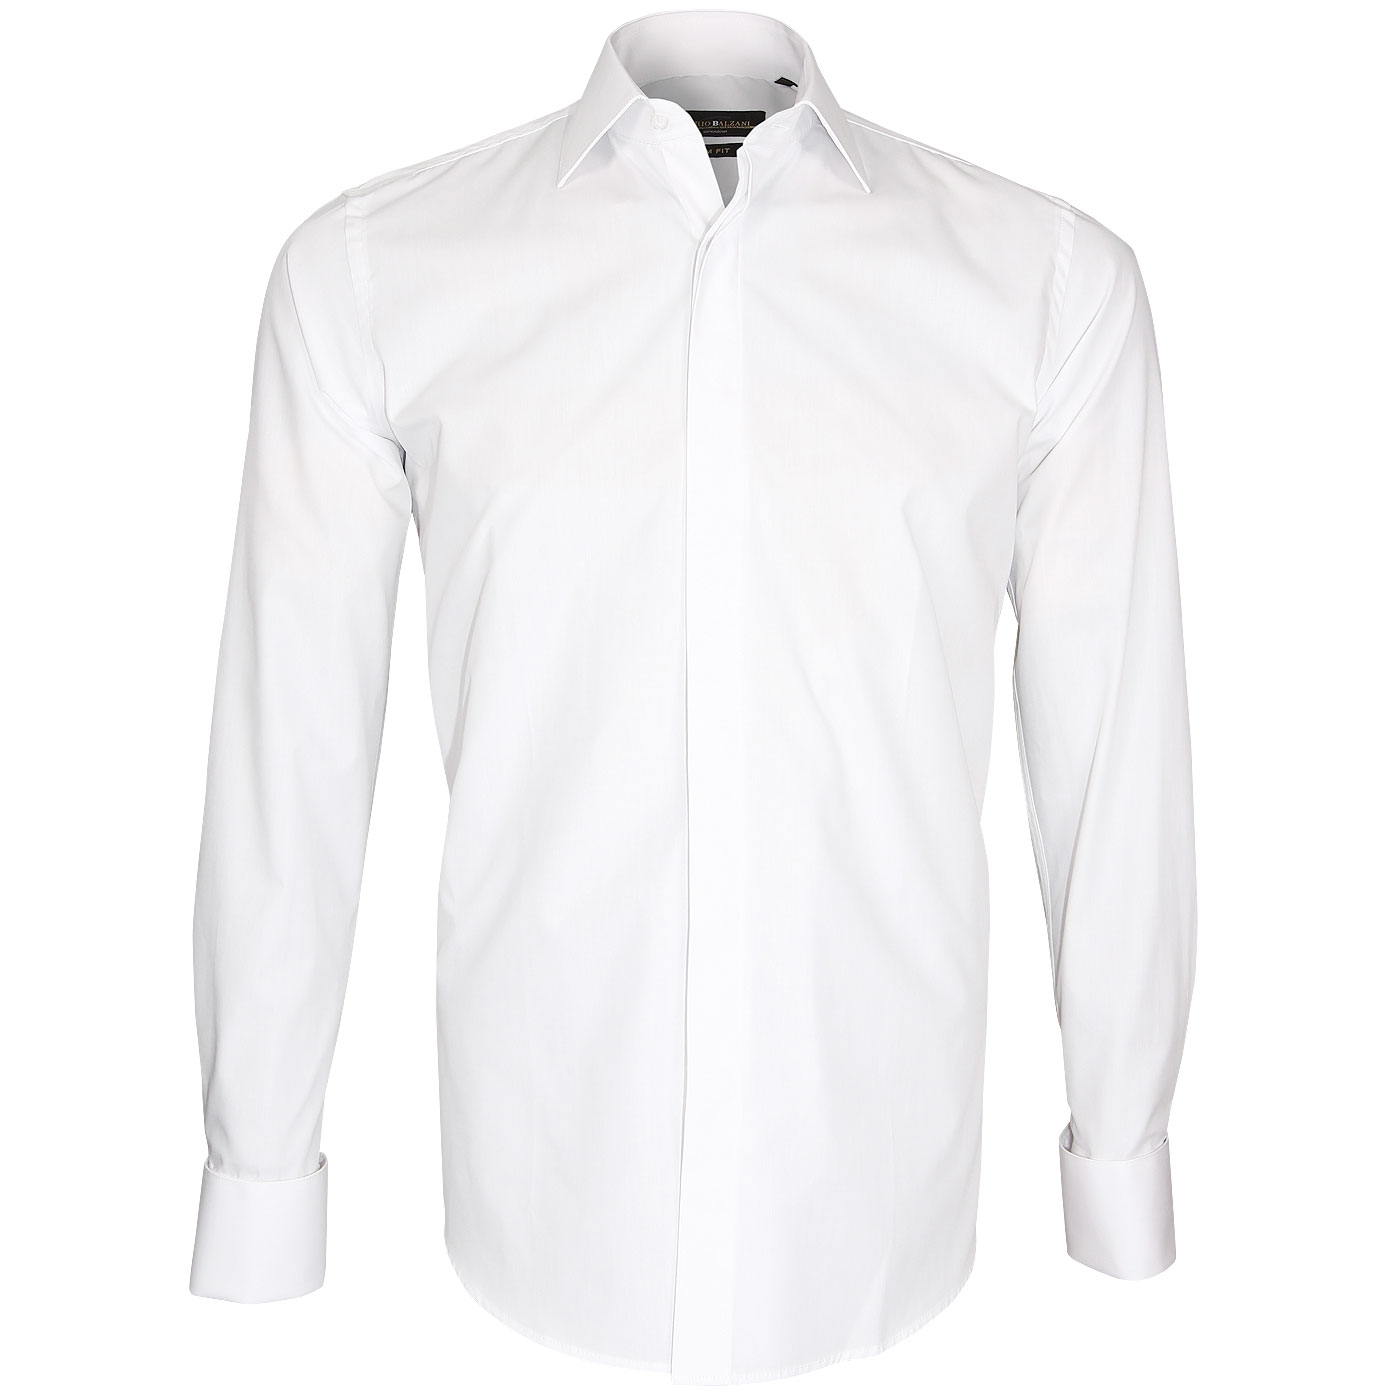 French cuffs shirt easy ironing